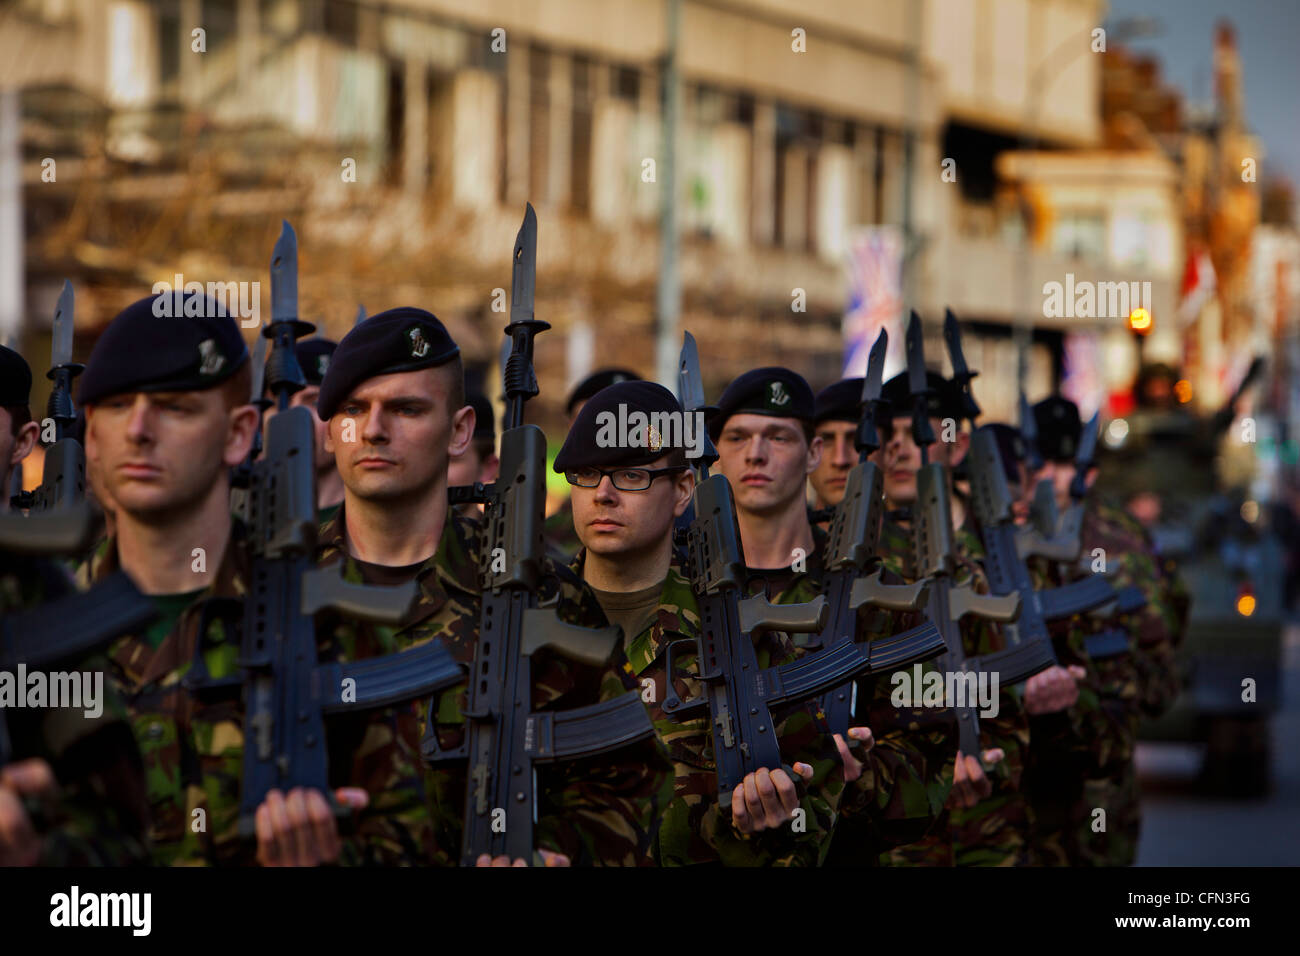 troops from the Territorial Army regiment The Royal Yeomanry marching through the streets of Hammersmith, london - Stock Image